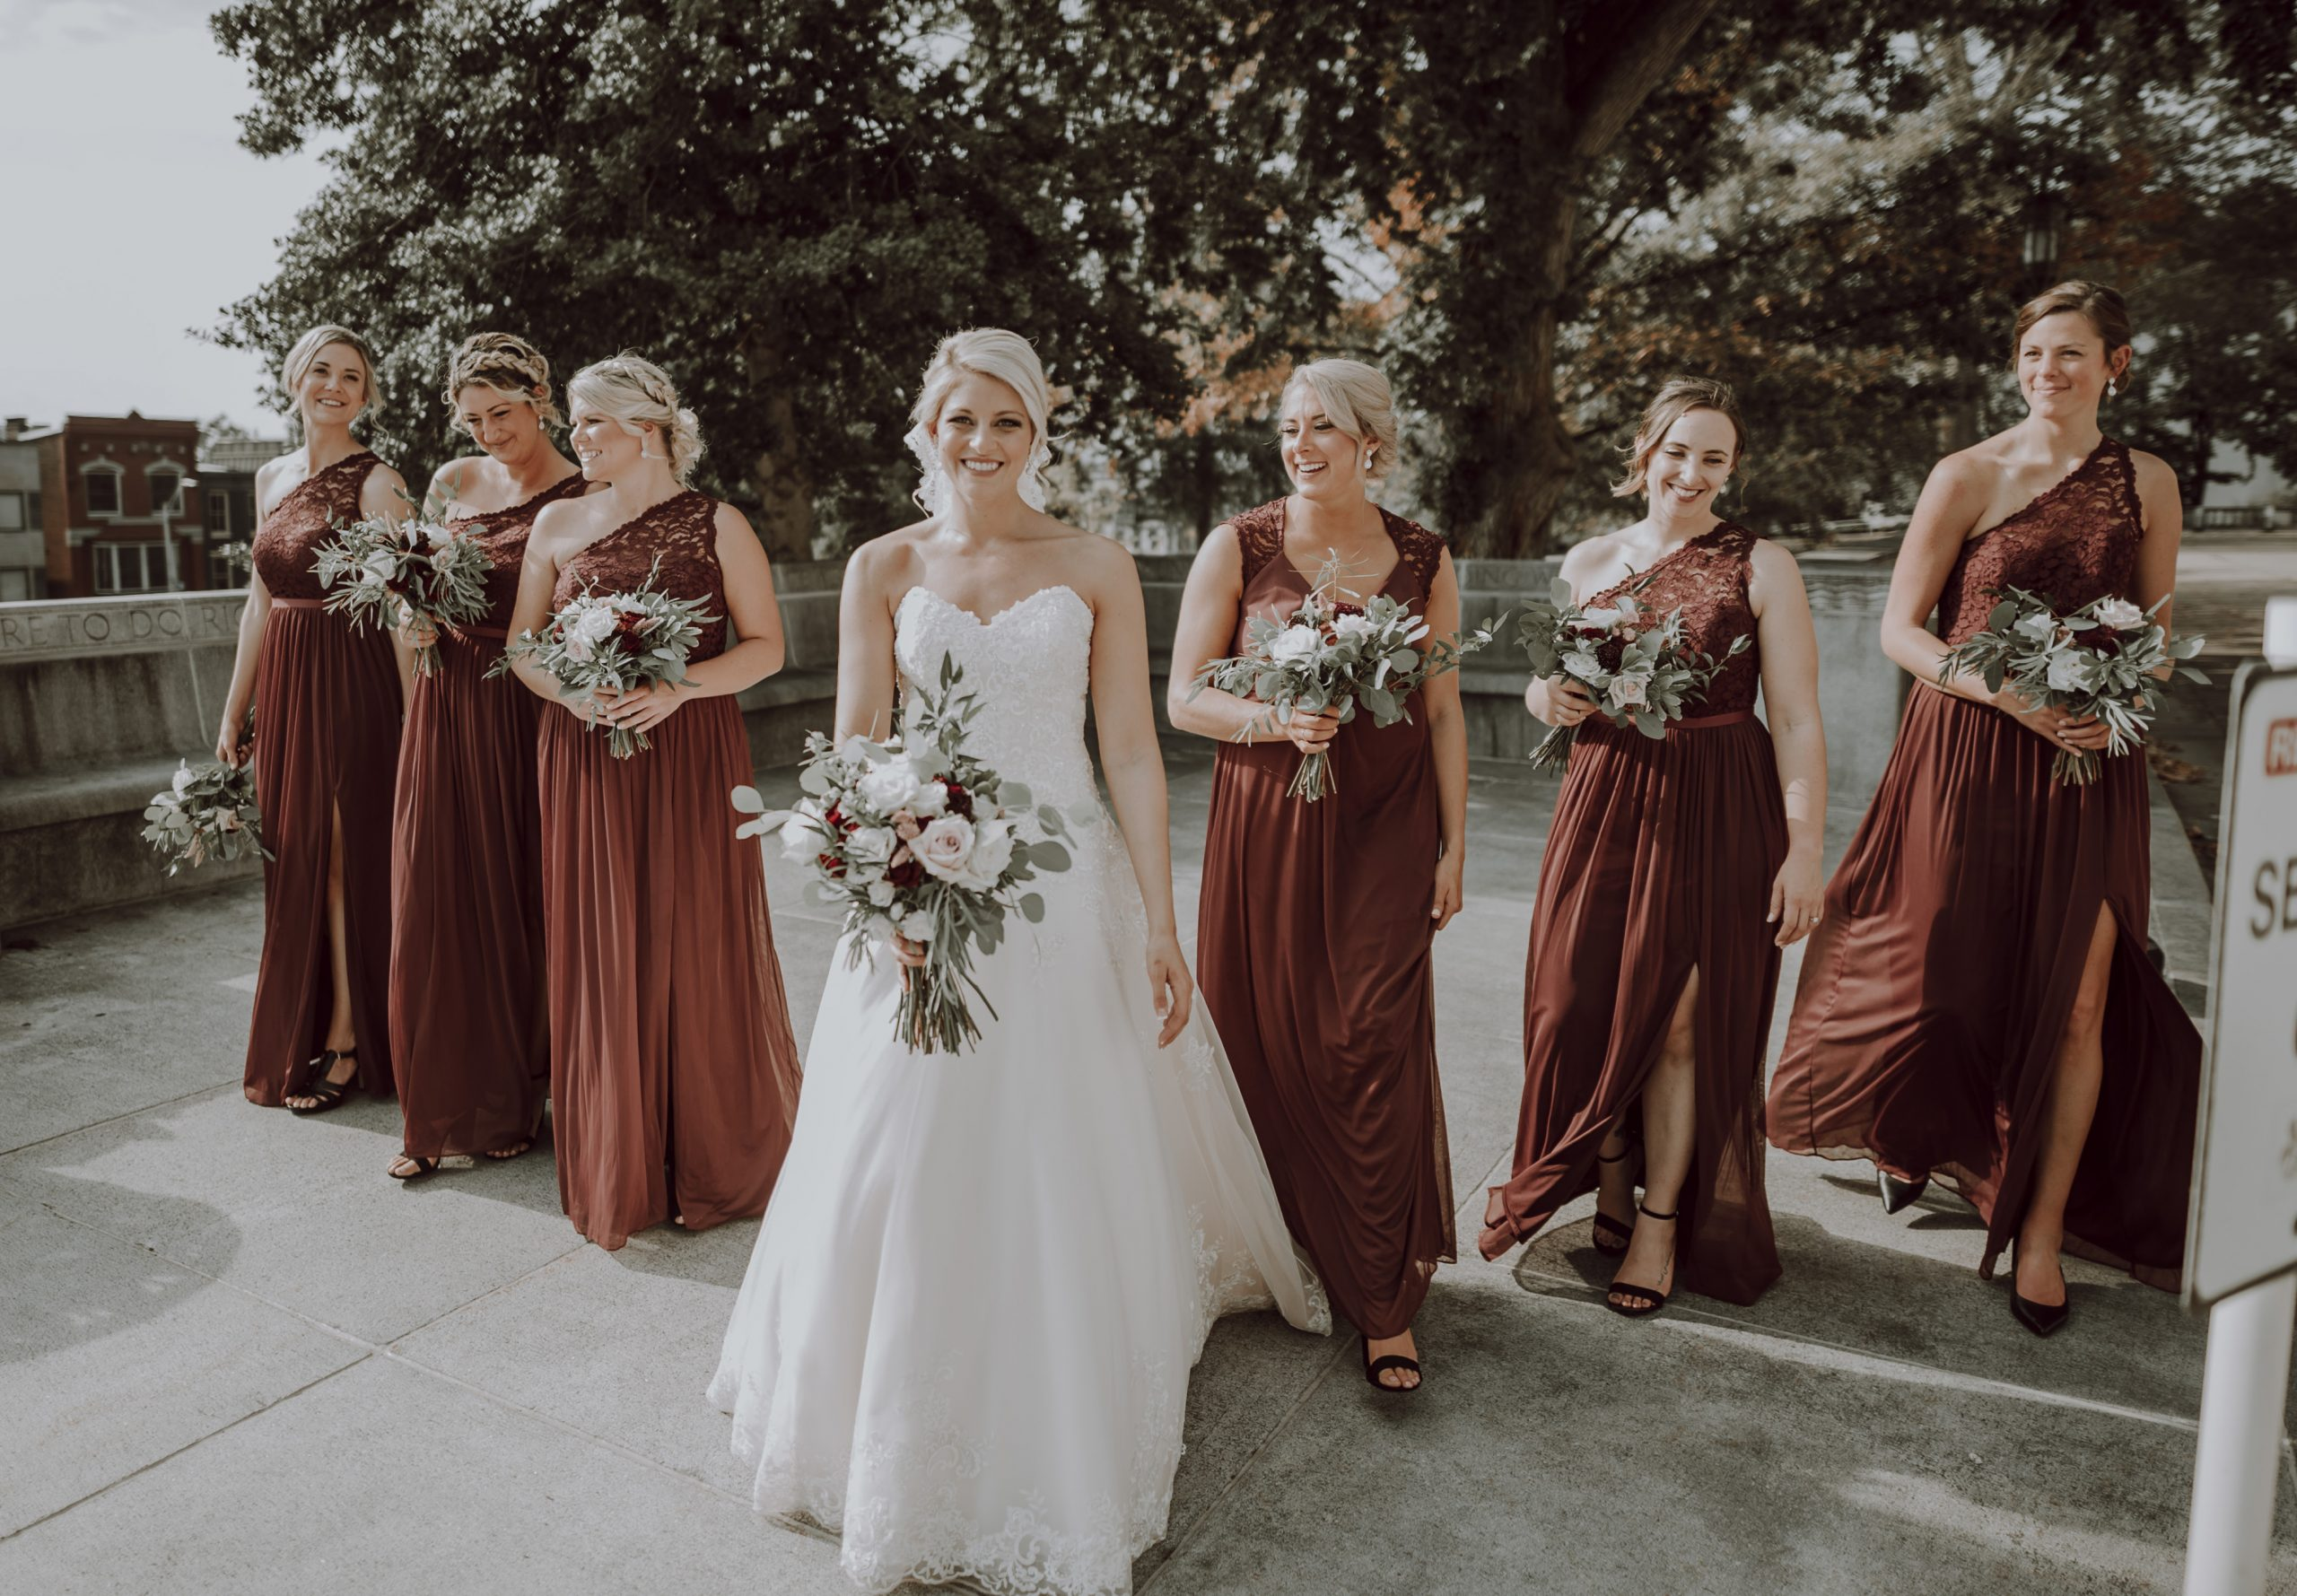 All hail the bride tribe. Captured by Lovefusion Photography at Stock's Manor in Mechanicsburg, PA. Featured on Dream Weddings.